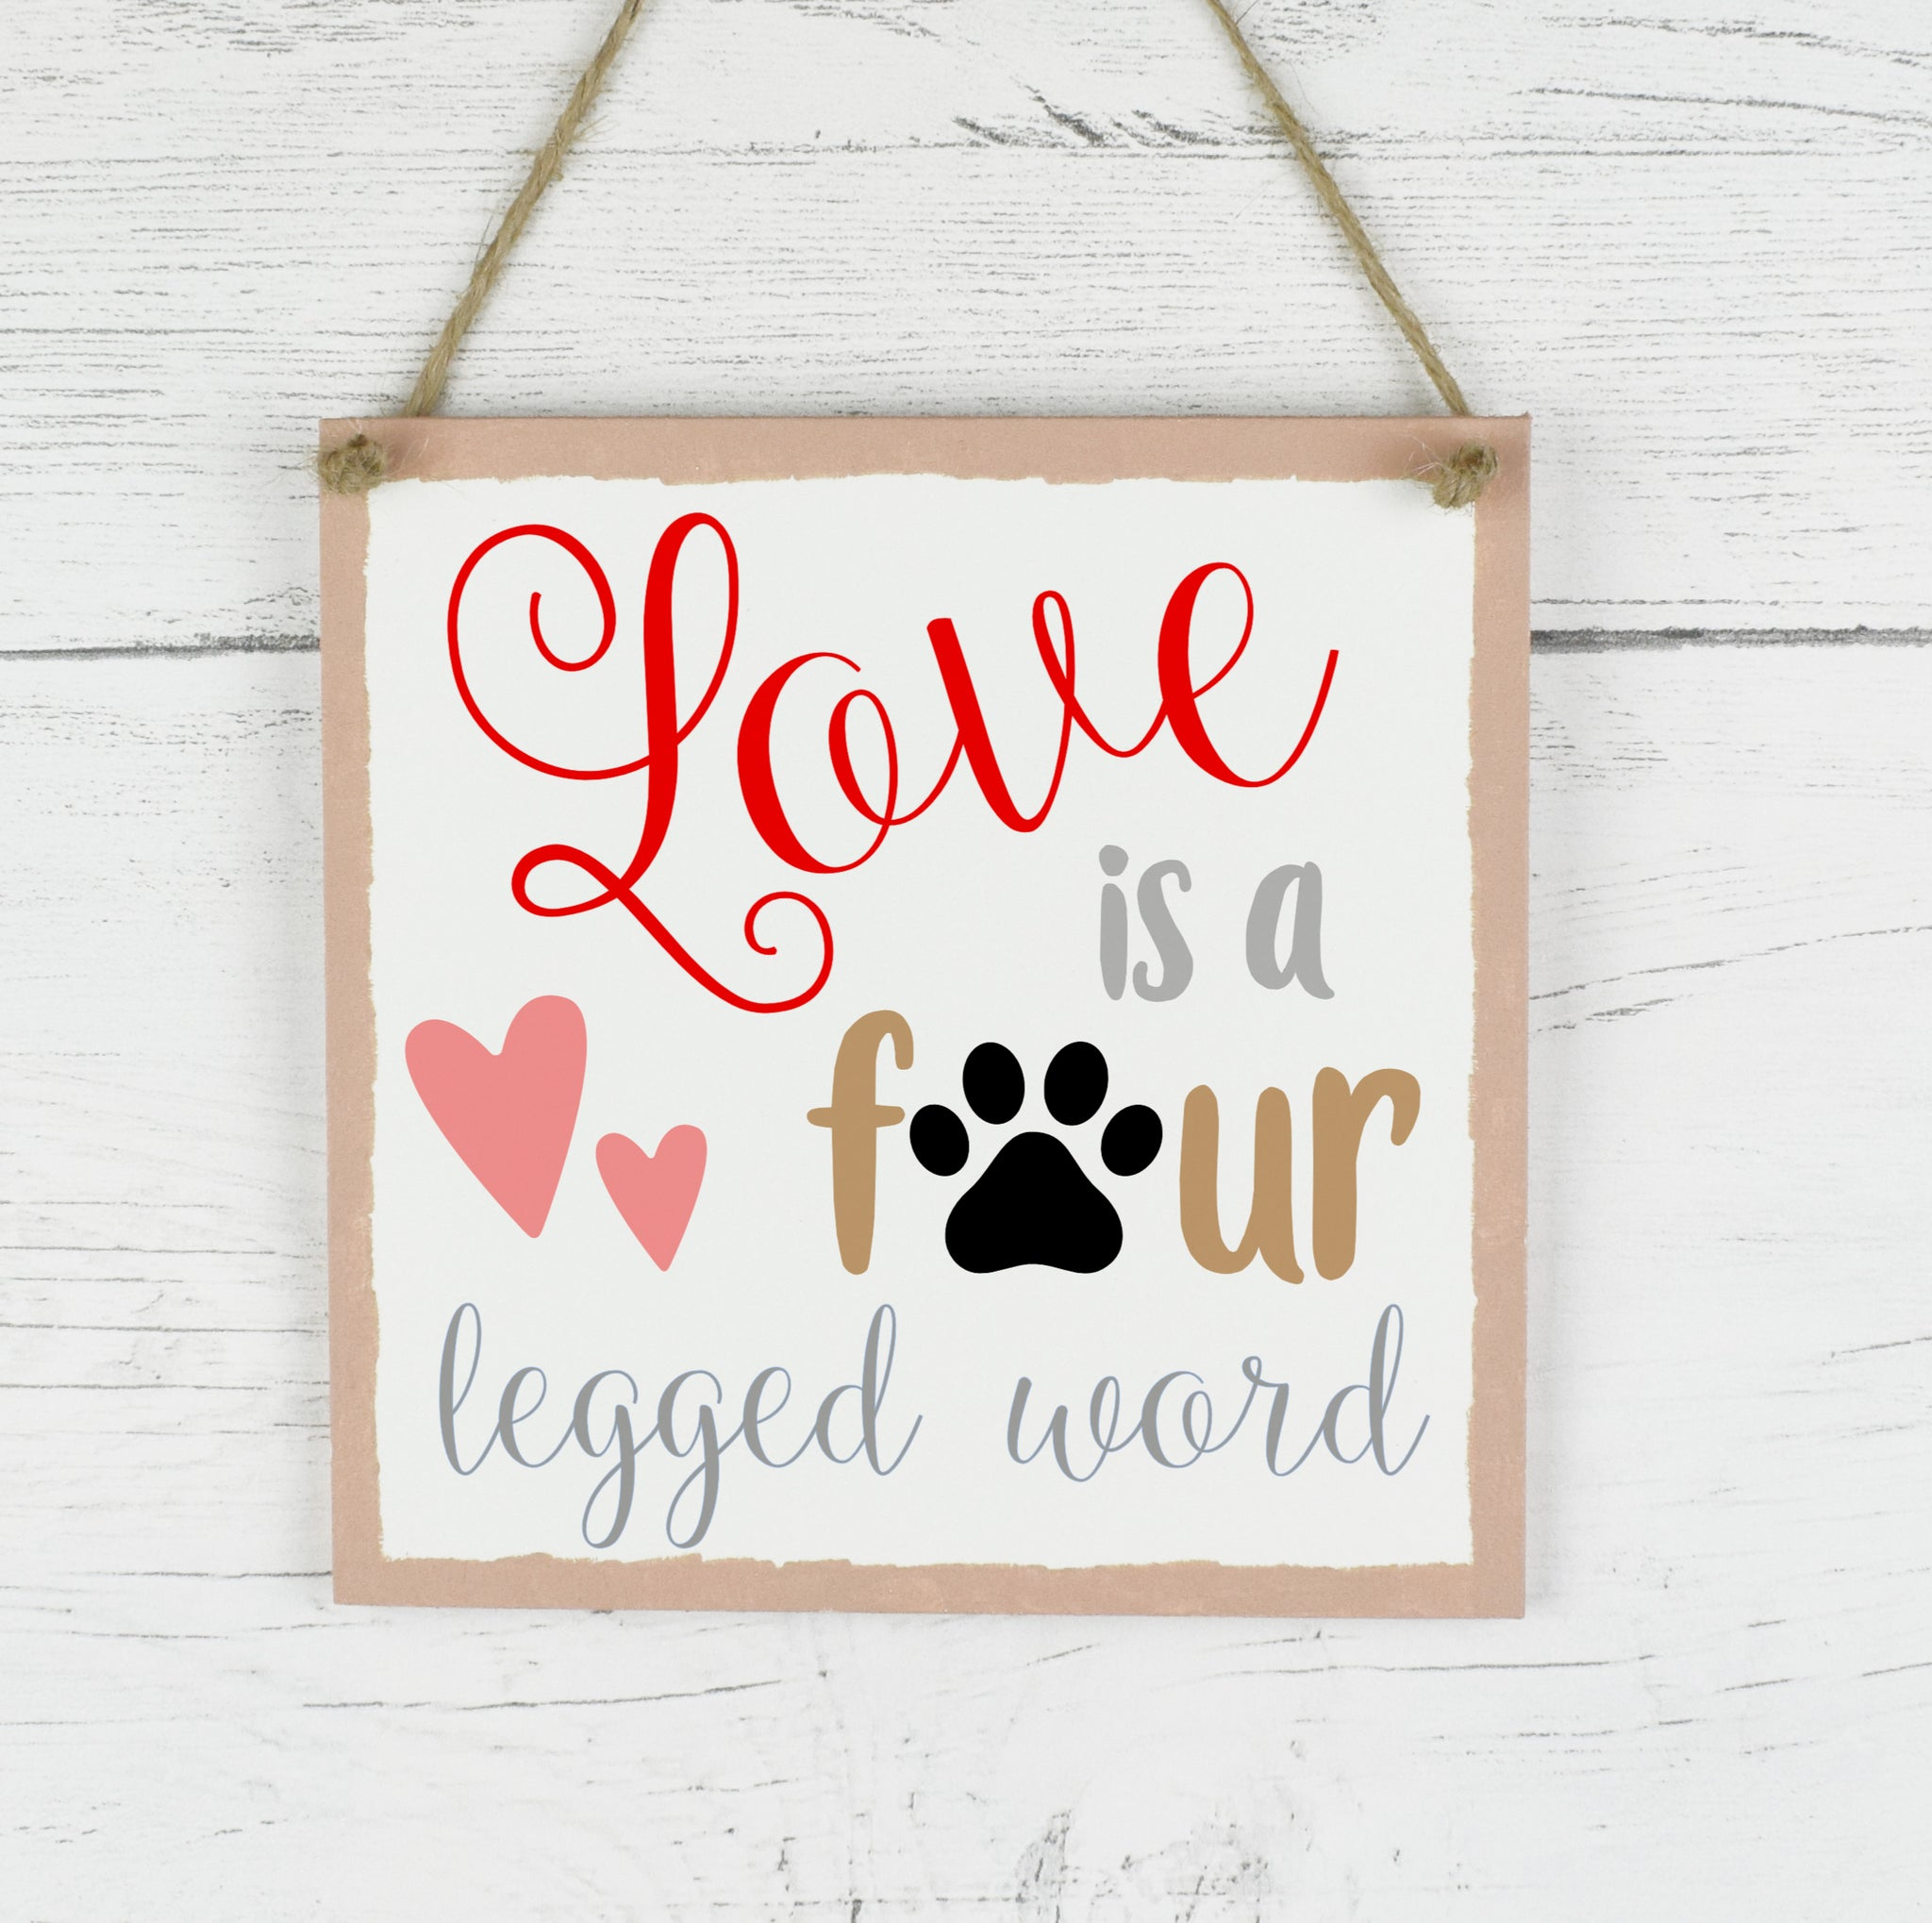 Family Pet Quote Plaque, Love Is A Four Legged Word Wooden Sign, New Home Gift, Pet Quote Wooden Plaque Sign, Dog Lover Gift, Cat Lover